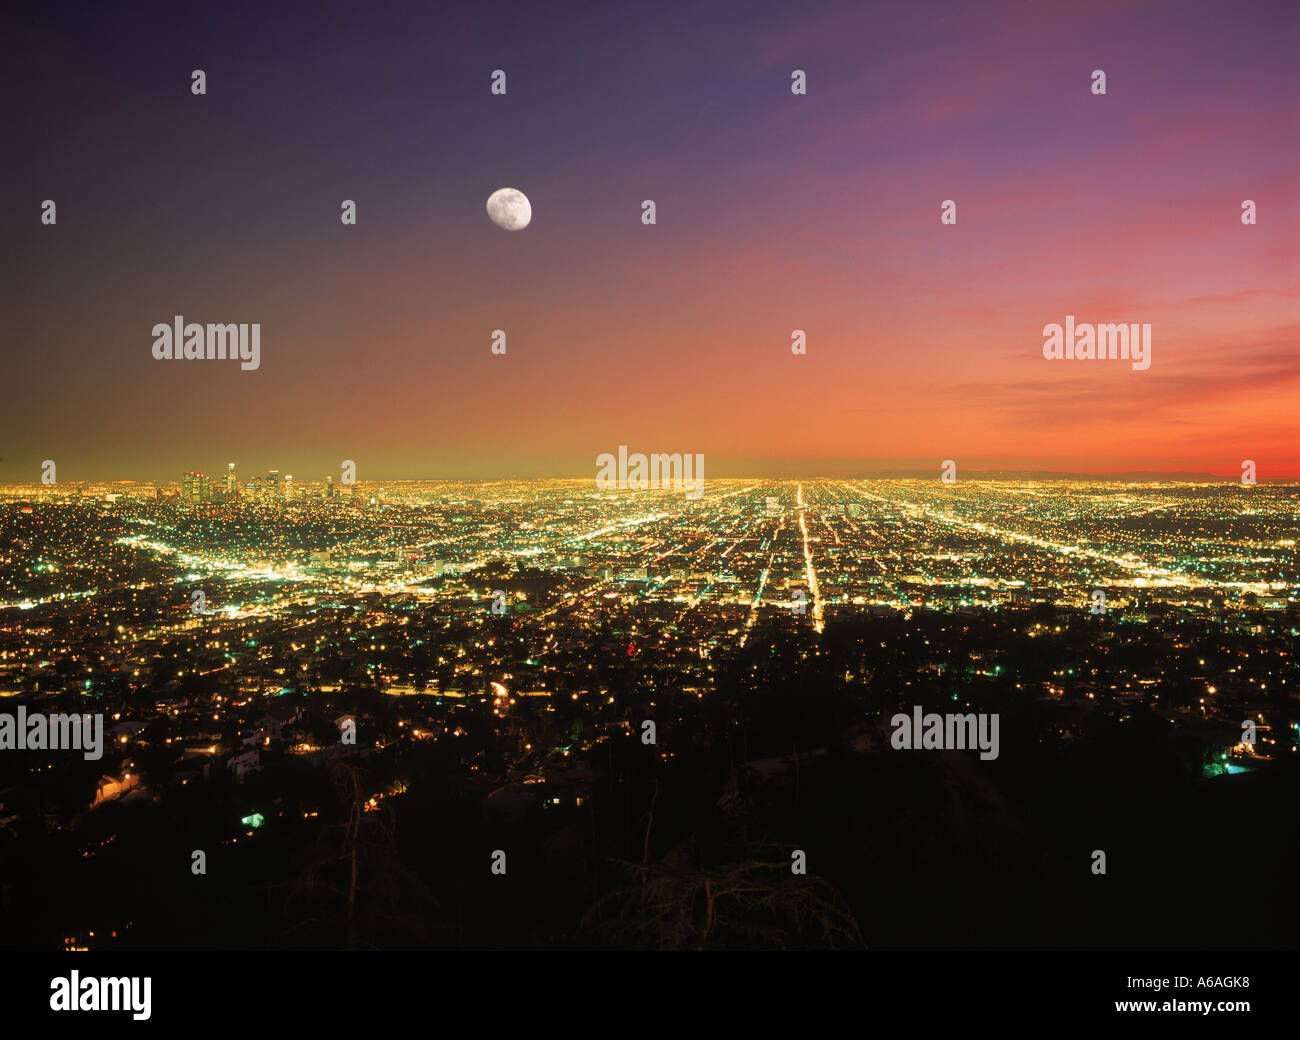 Los Angeles urban sprawl  under rising moon at dusk from Griffith Park Observatory - Stock Image